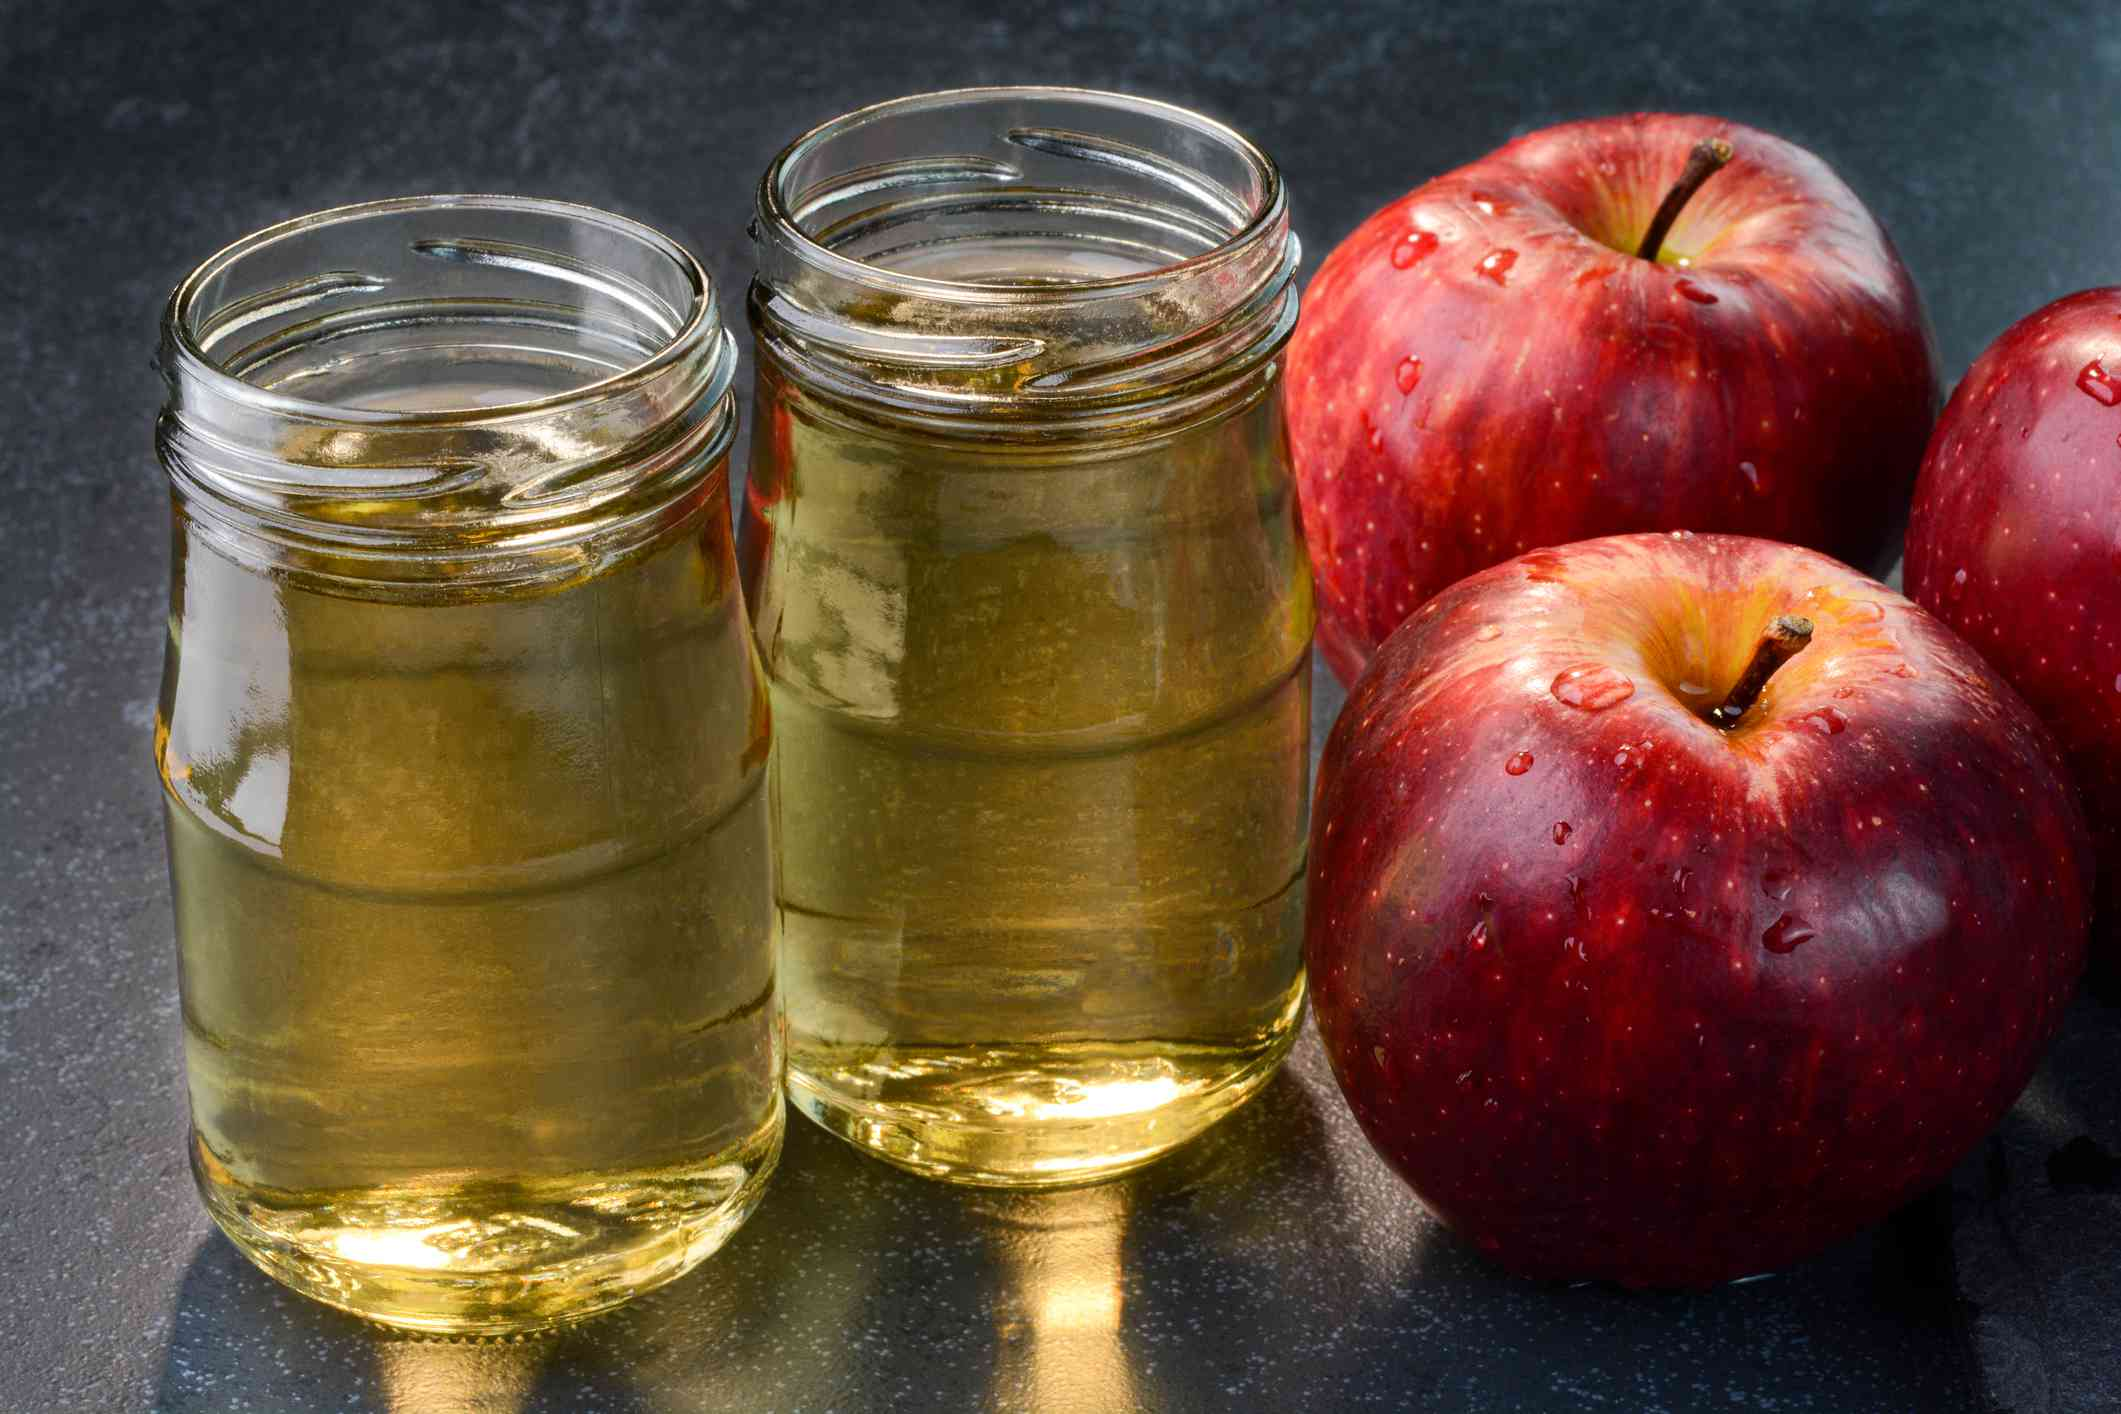 Two small jars of apple cider vinegar sit next two three apples covered in drops of water